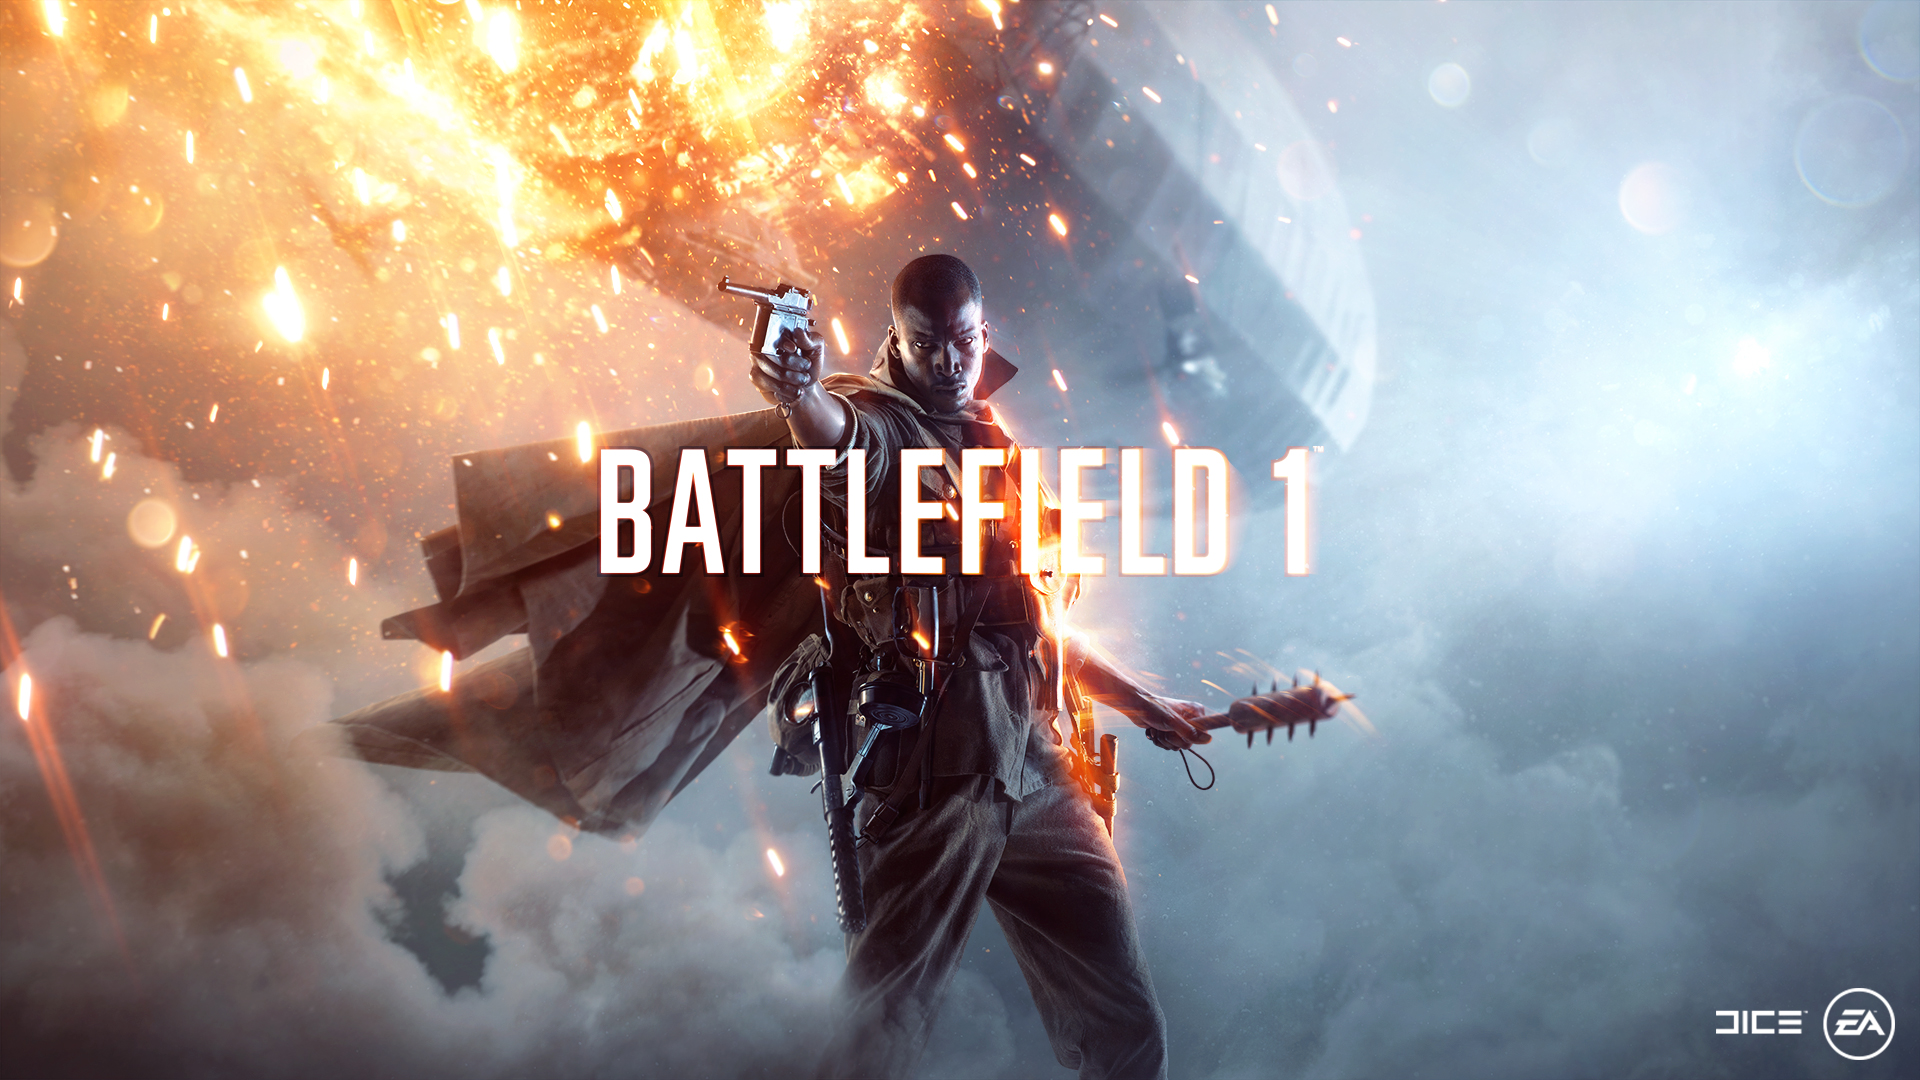 The next 'Battlefield' drops you in WWI, launches on October 21st